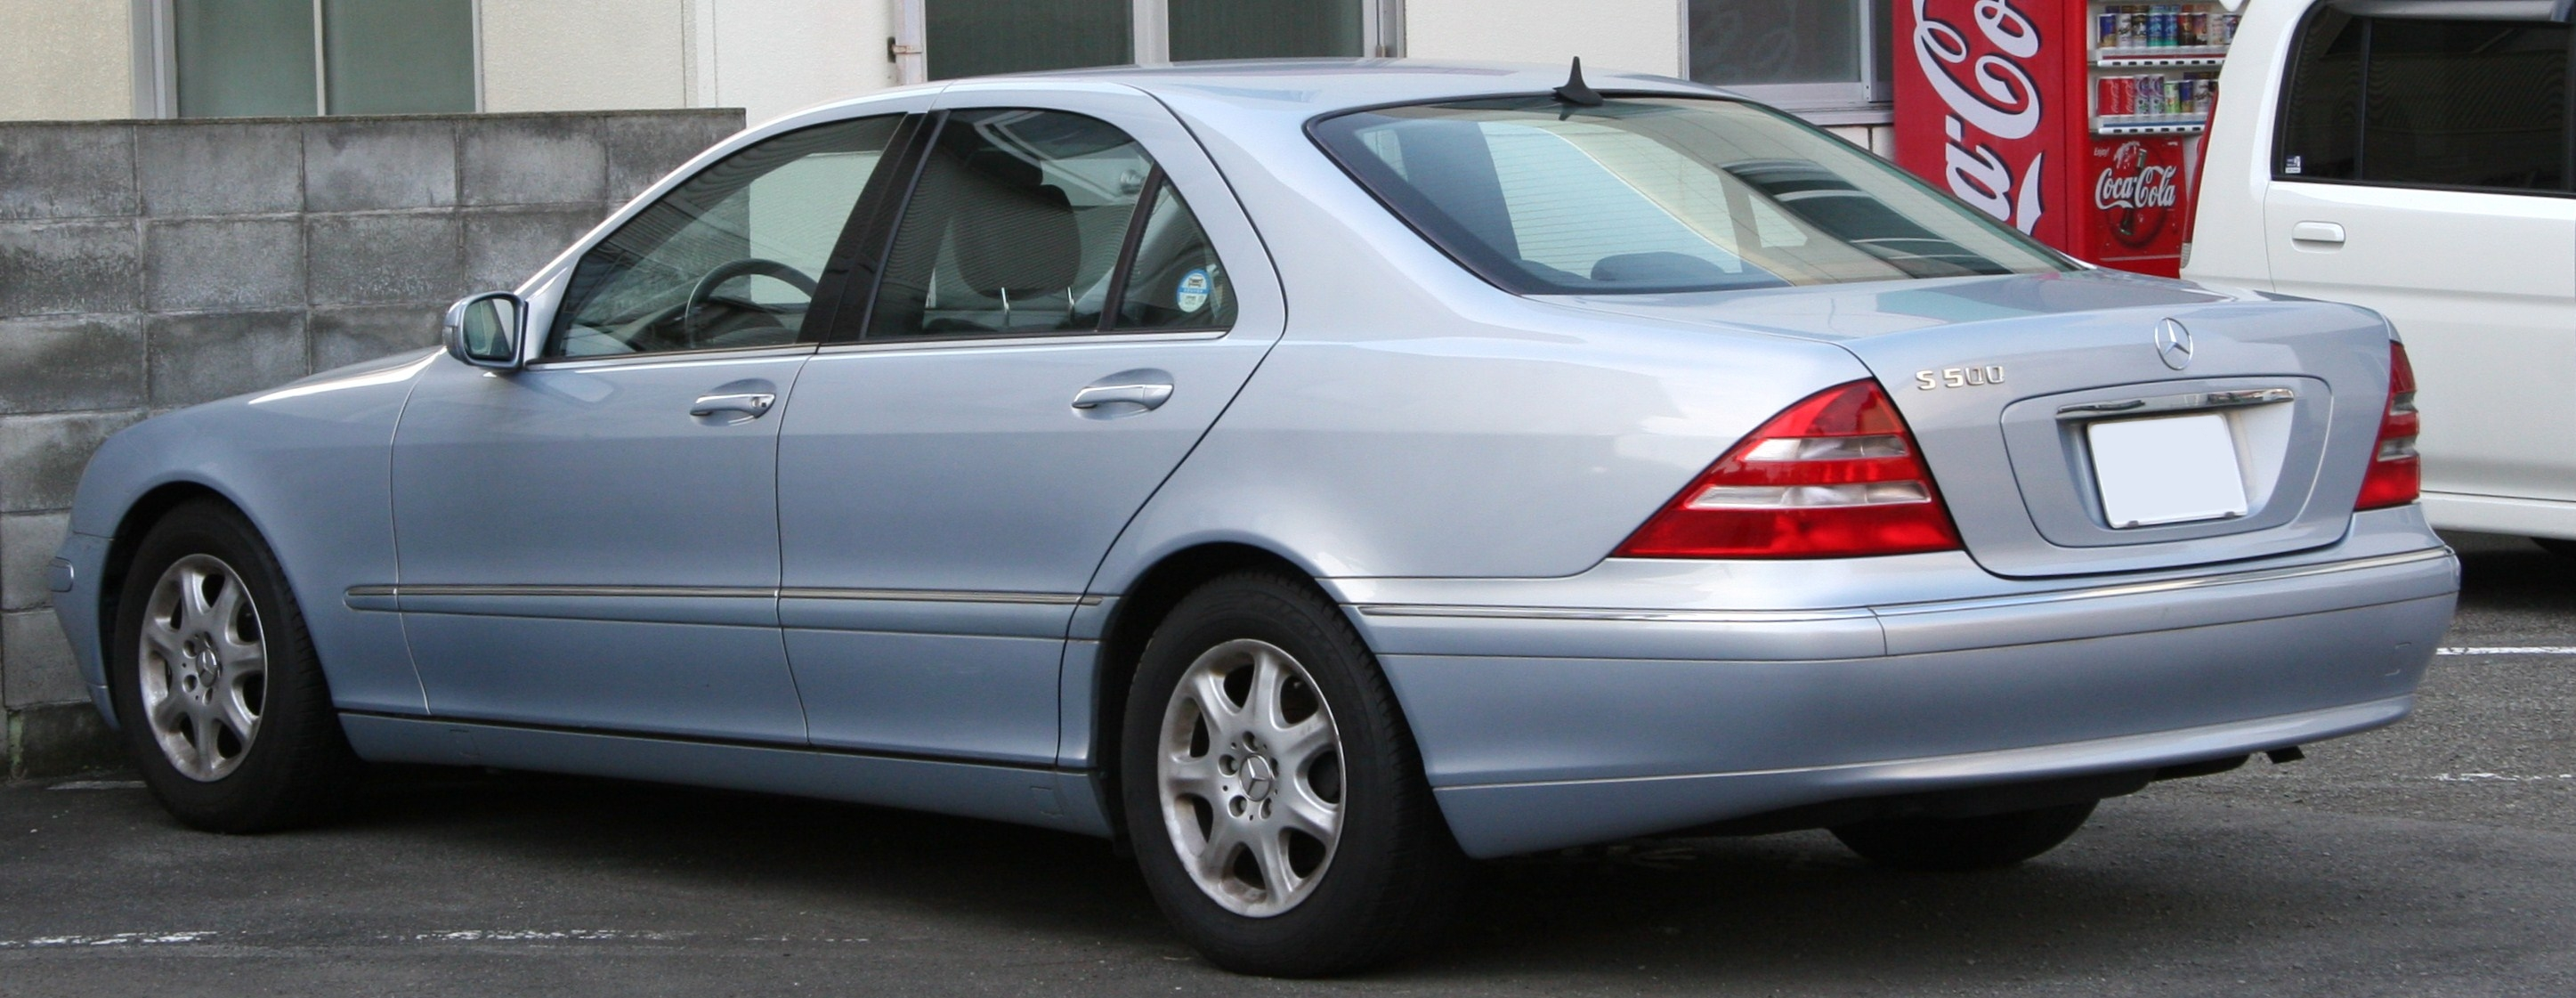 File 1998 2002 Mercedes Benz S500 rear Wikimedia mons